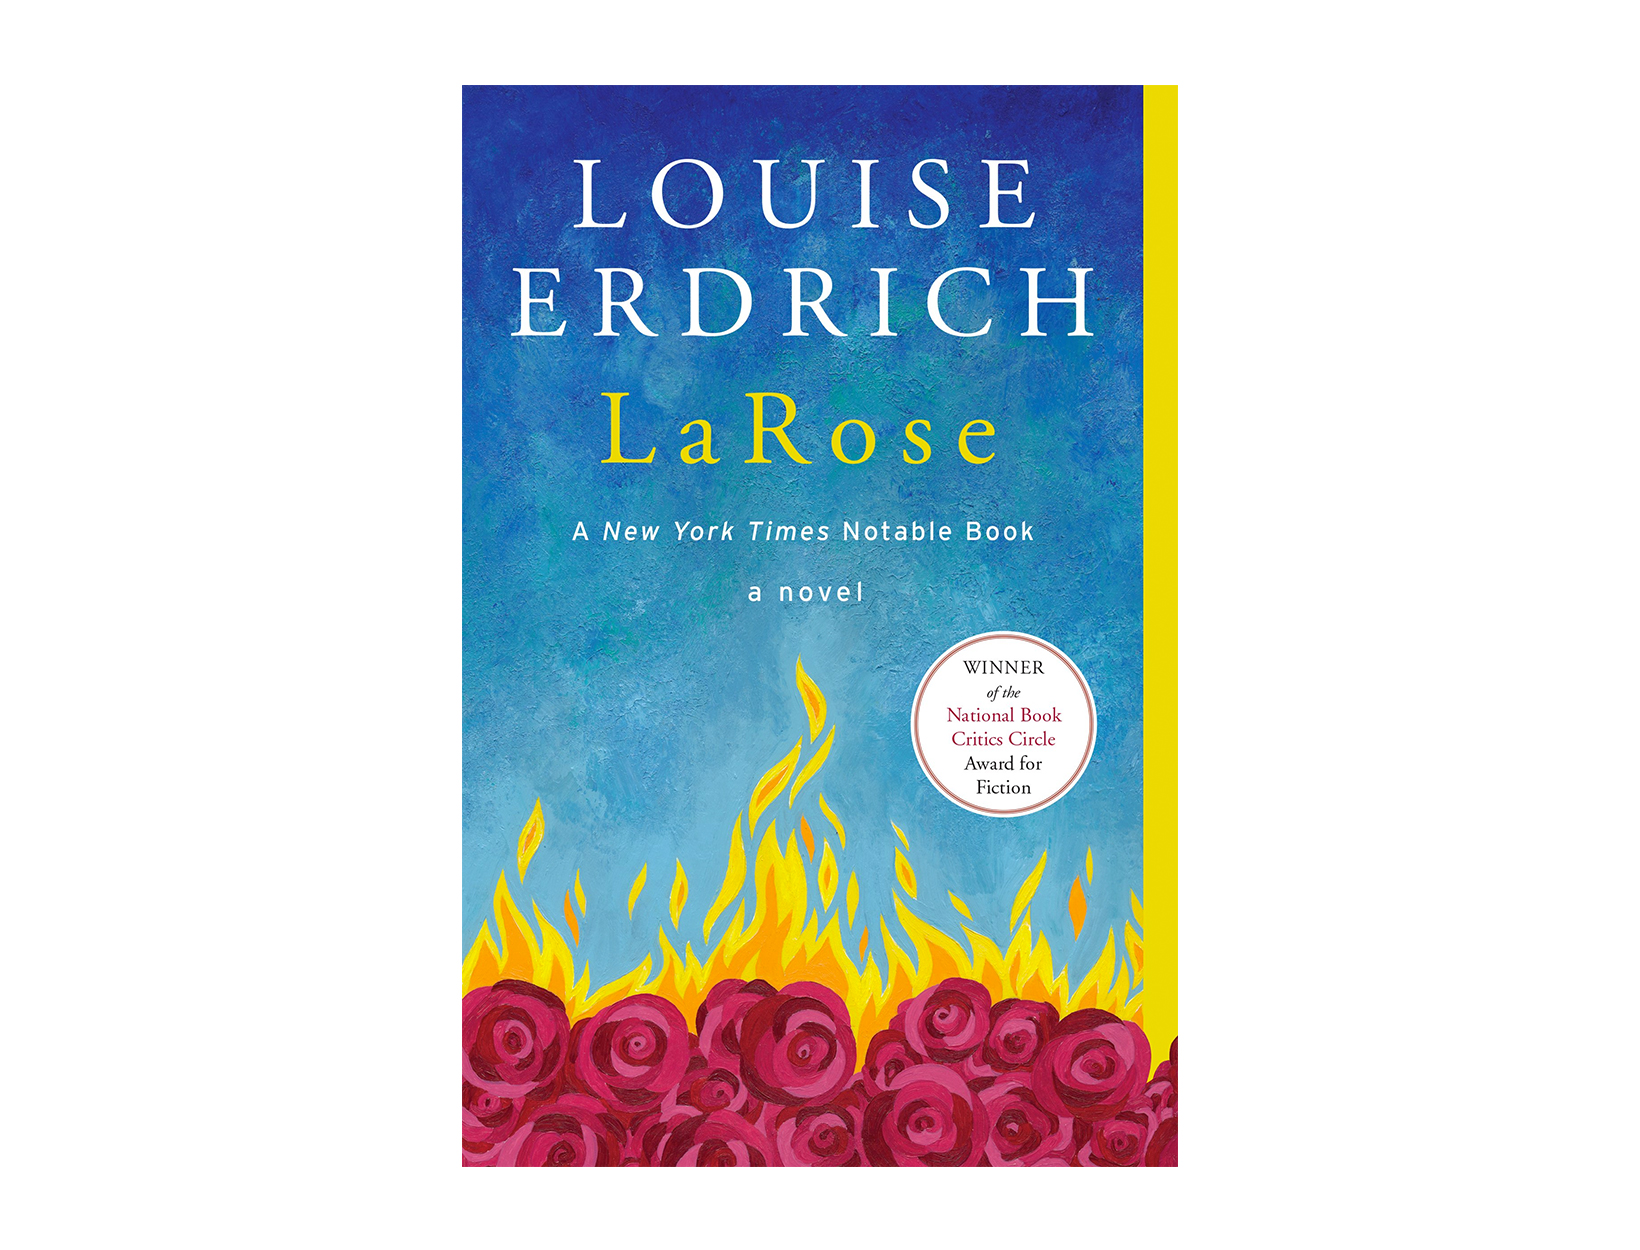 LaRose by Louise Edrich